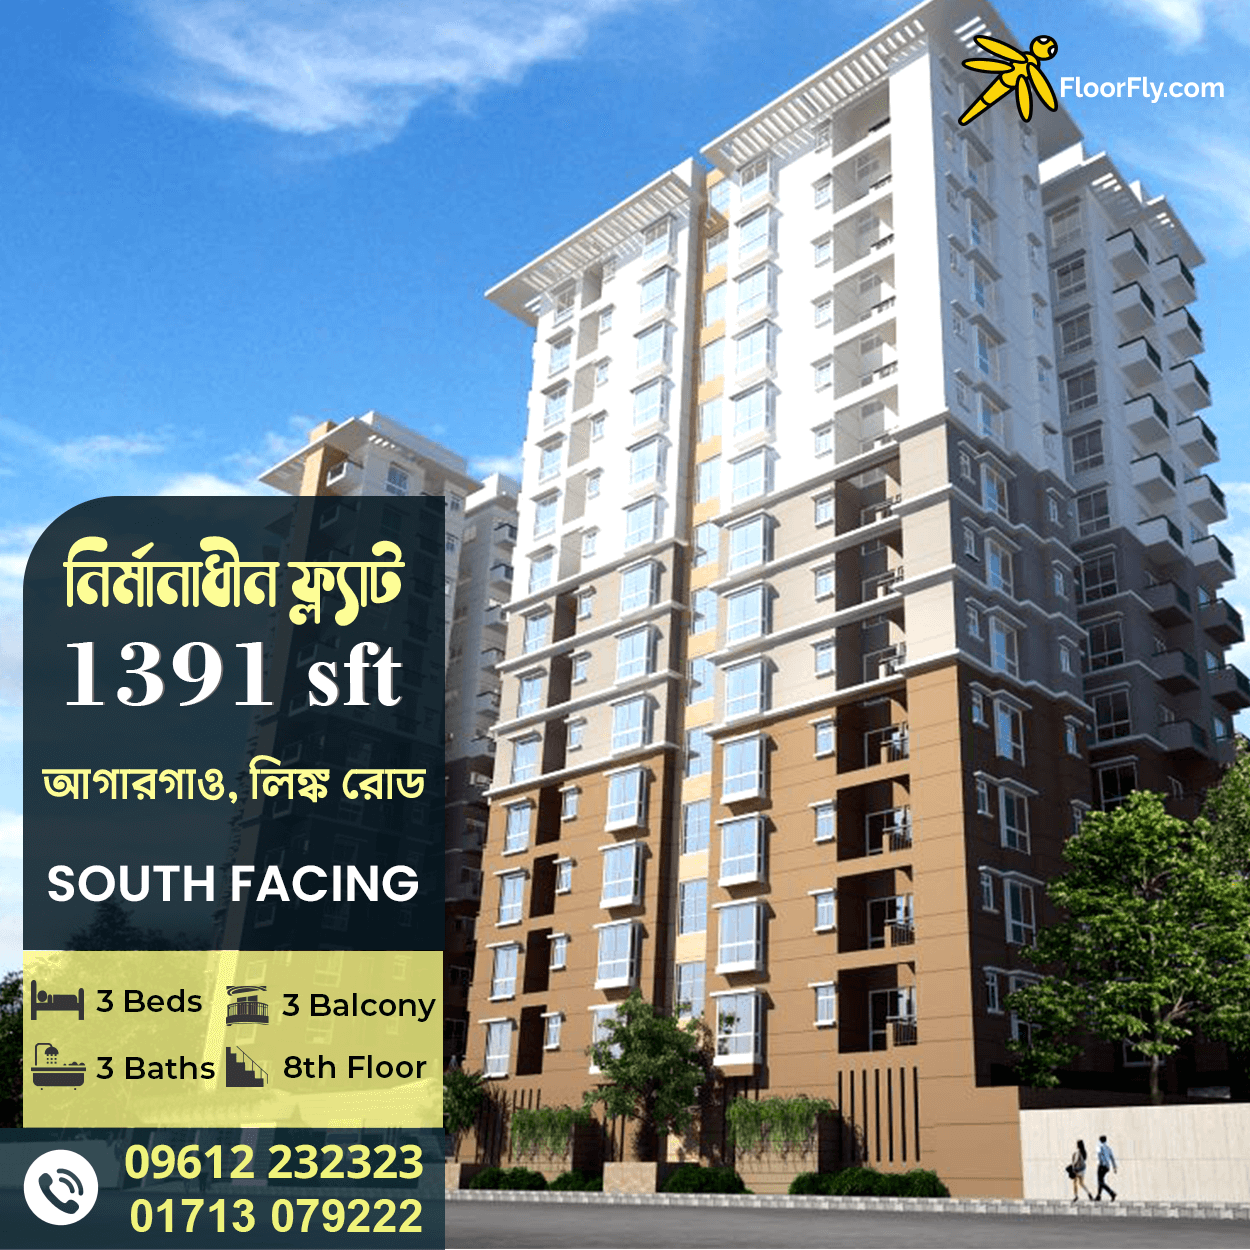 3 Bed Apartment for Sale in Nice Location   Exclusive 1391 sft Flat For Sale in Link Road, Agargaon